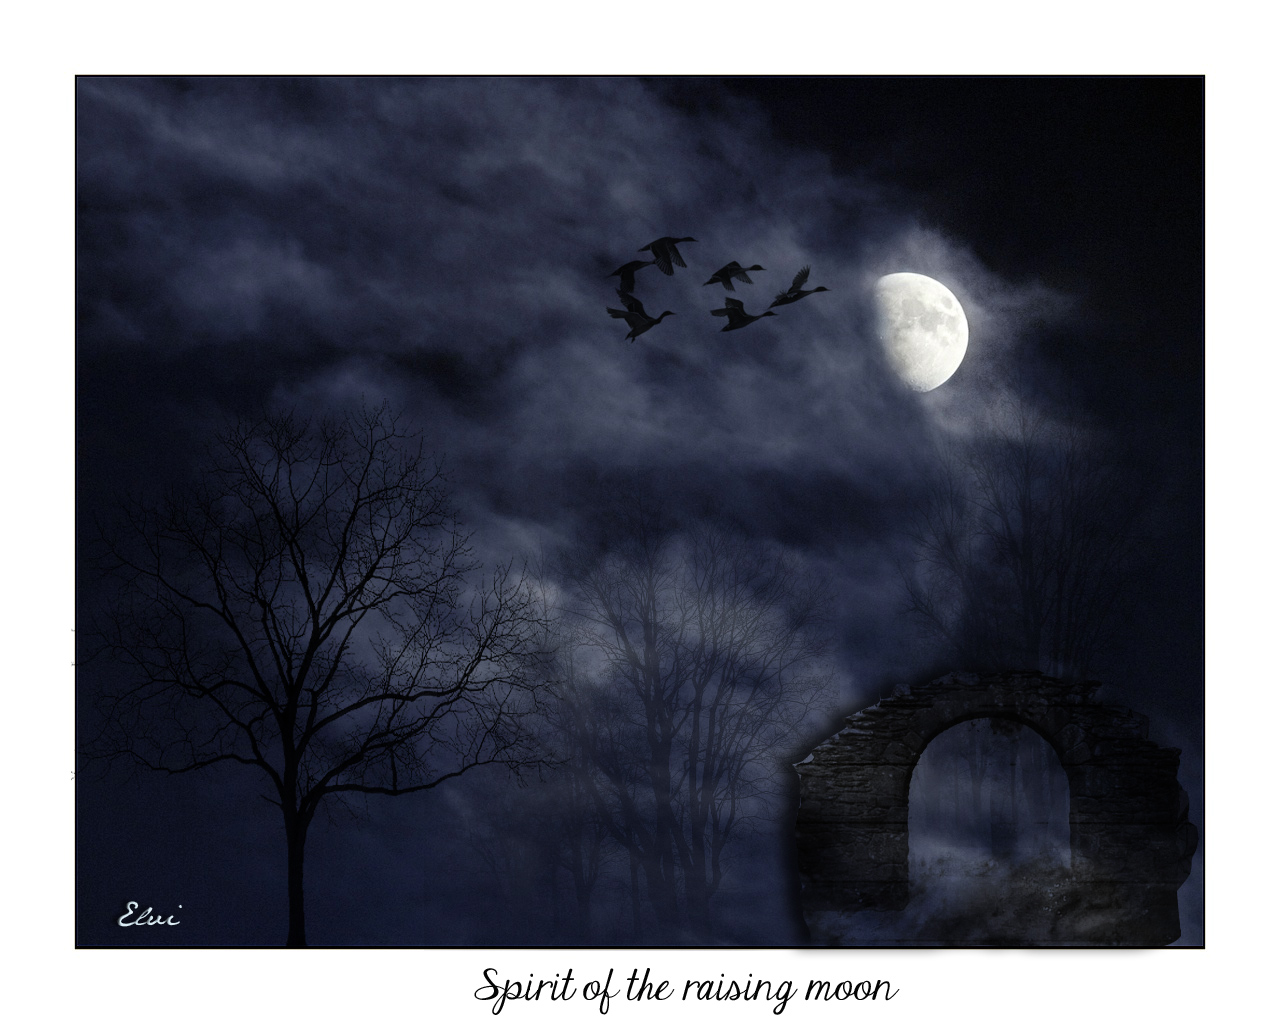 Spirit of the raising moon